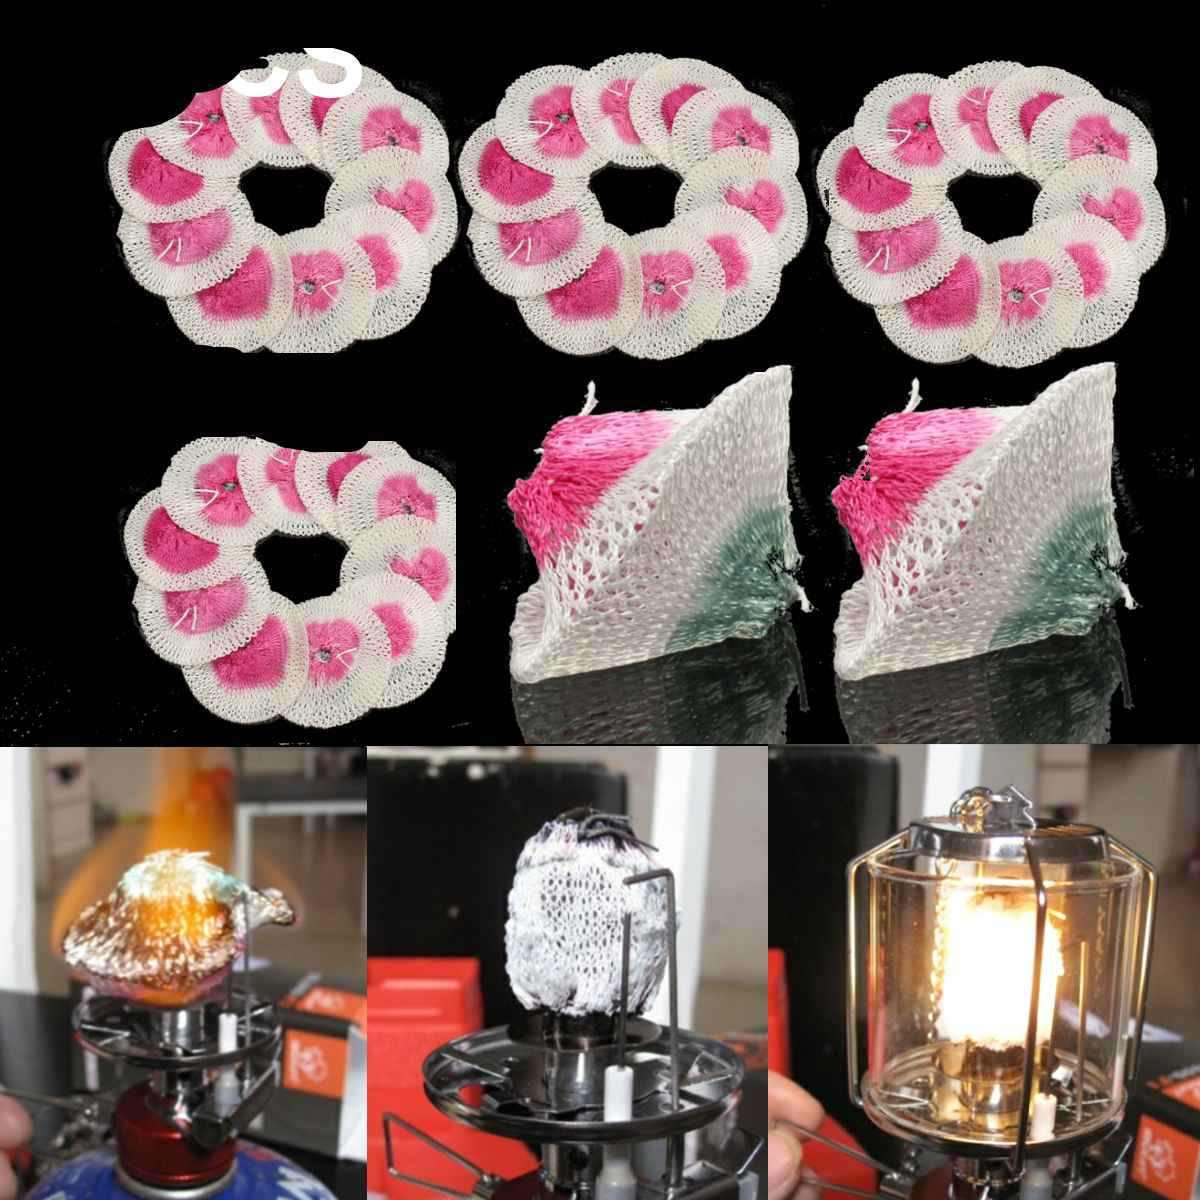 Heart Service Gas Lantern Gauze Cover Mantles Kerosene Lamp Cover Cotton Yarn Wick Shade Home Outdoor Use 6 Pieces//1 Set